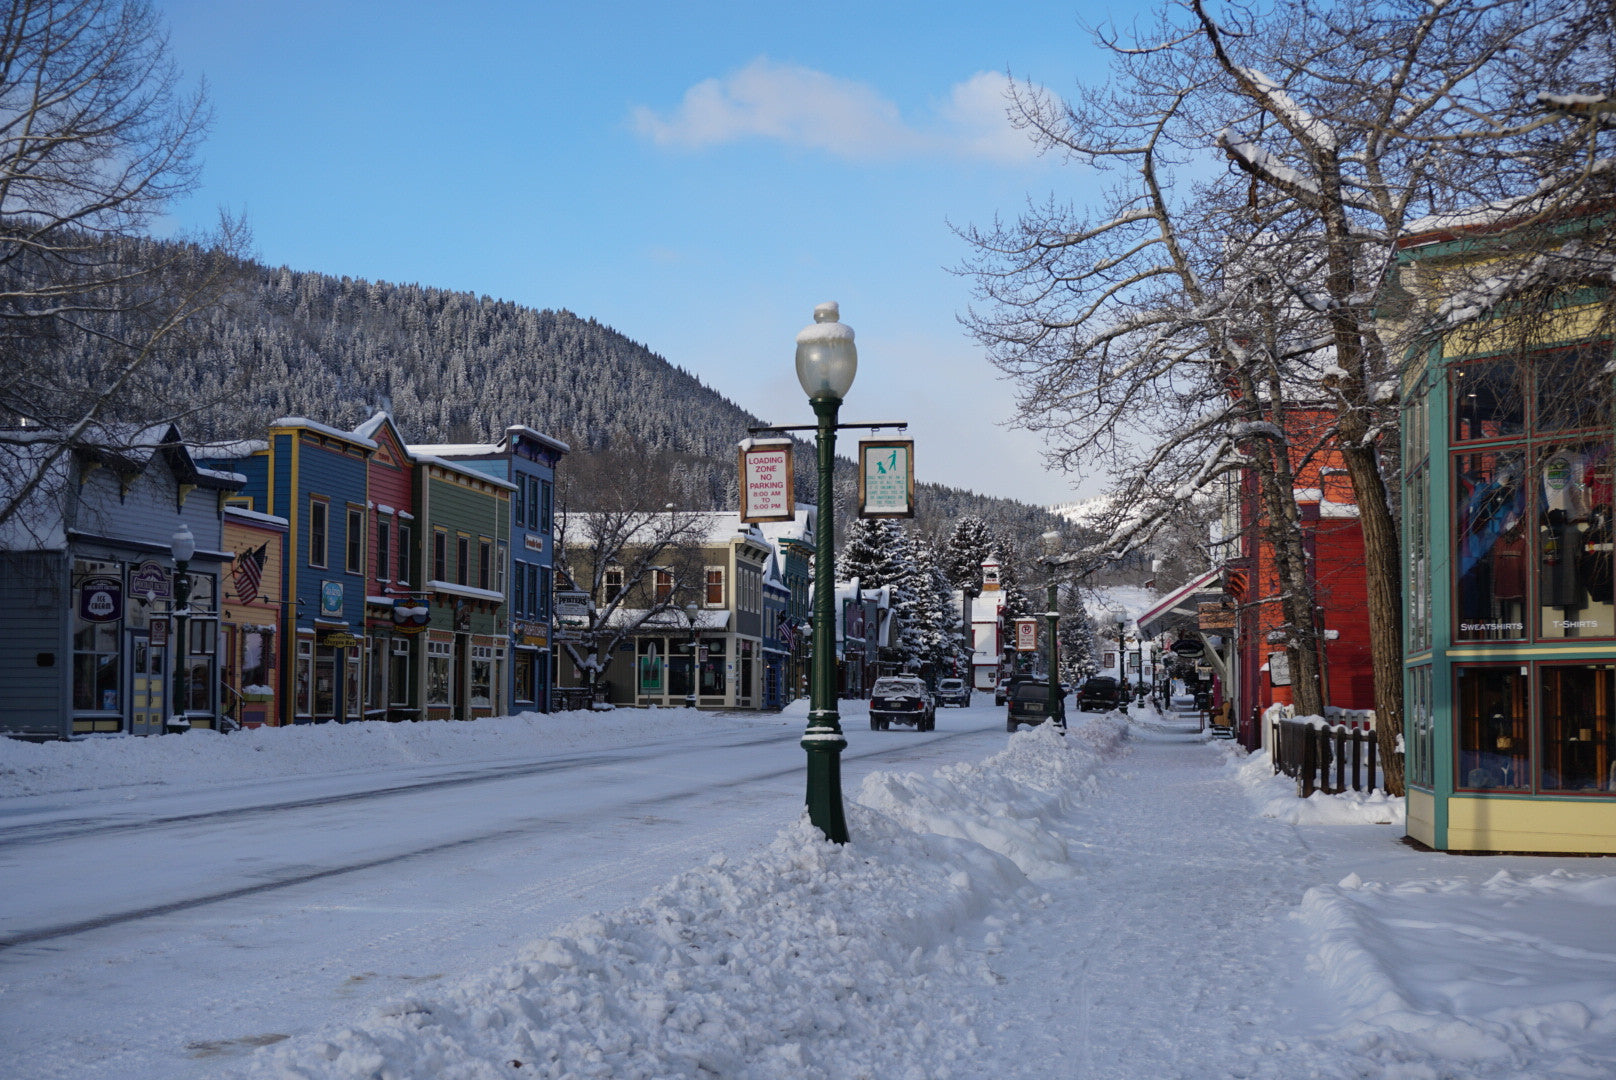 8 Reasons to Shop Local in Crested Butte this Season